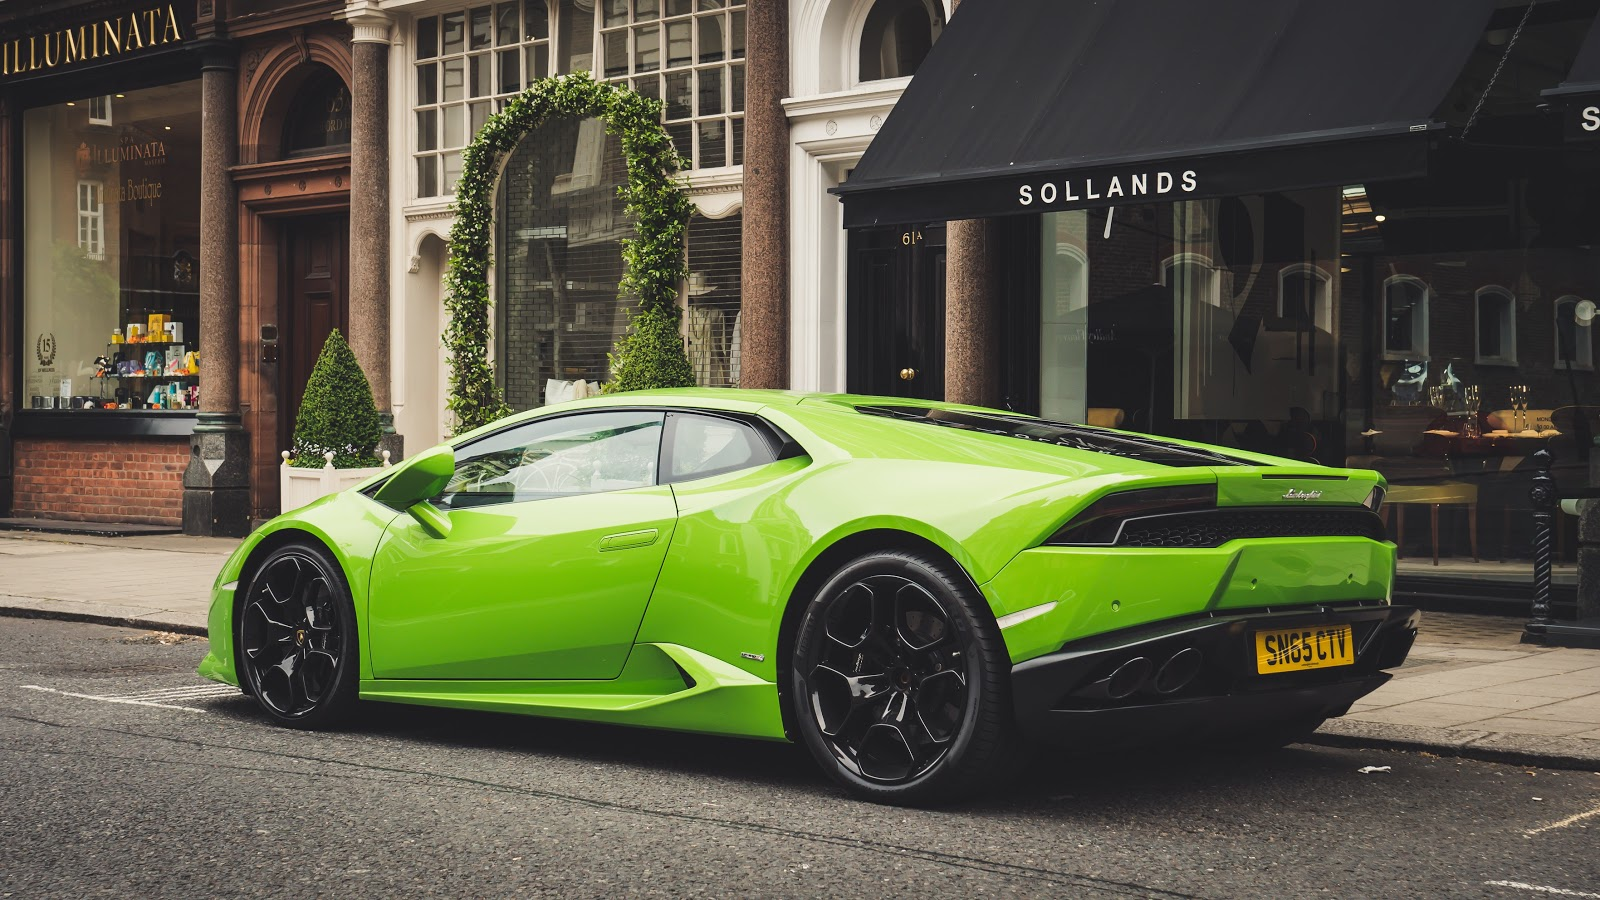 photo-of-parked-lime-green-lamborghini-car-images